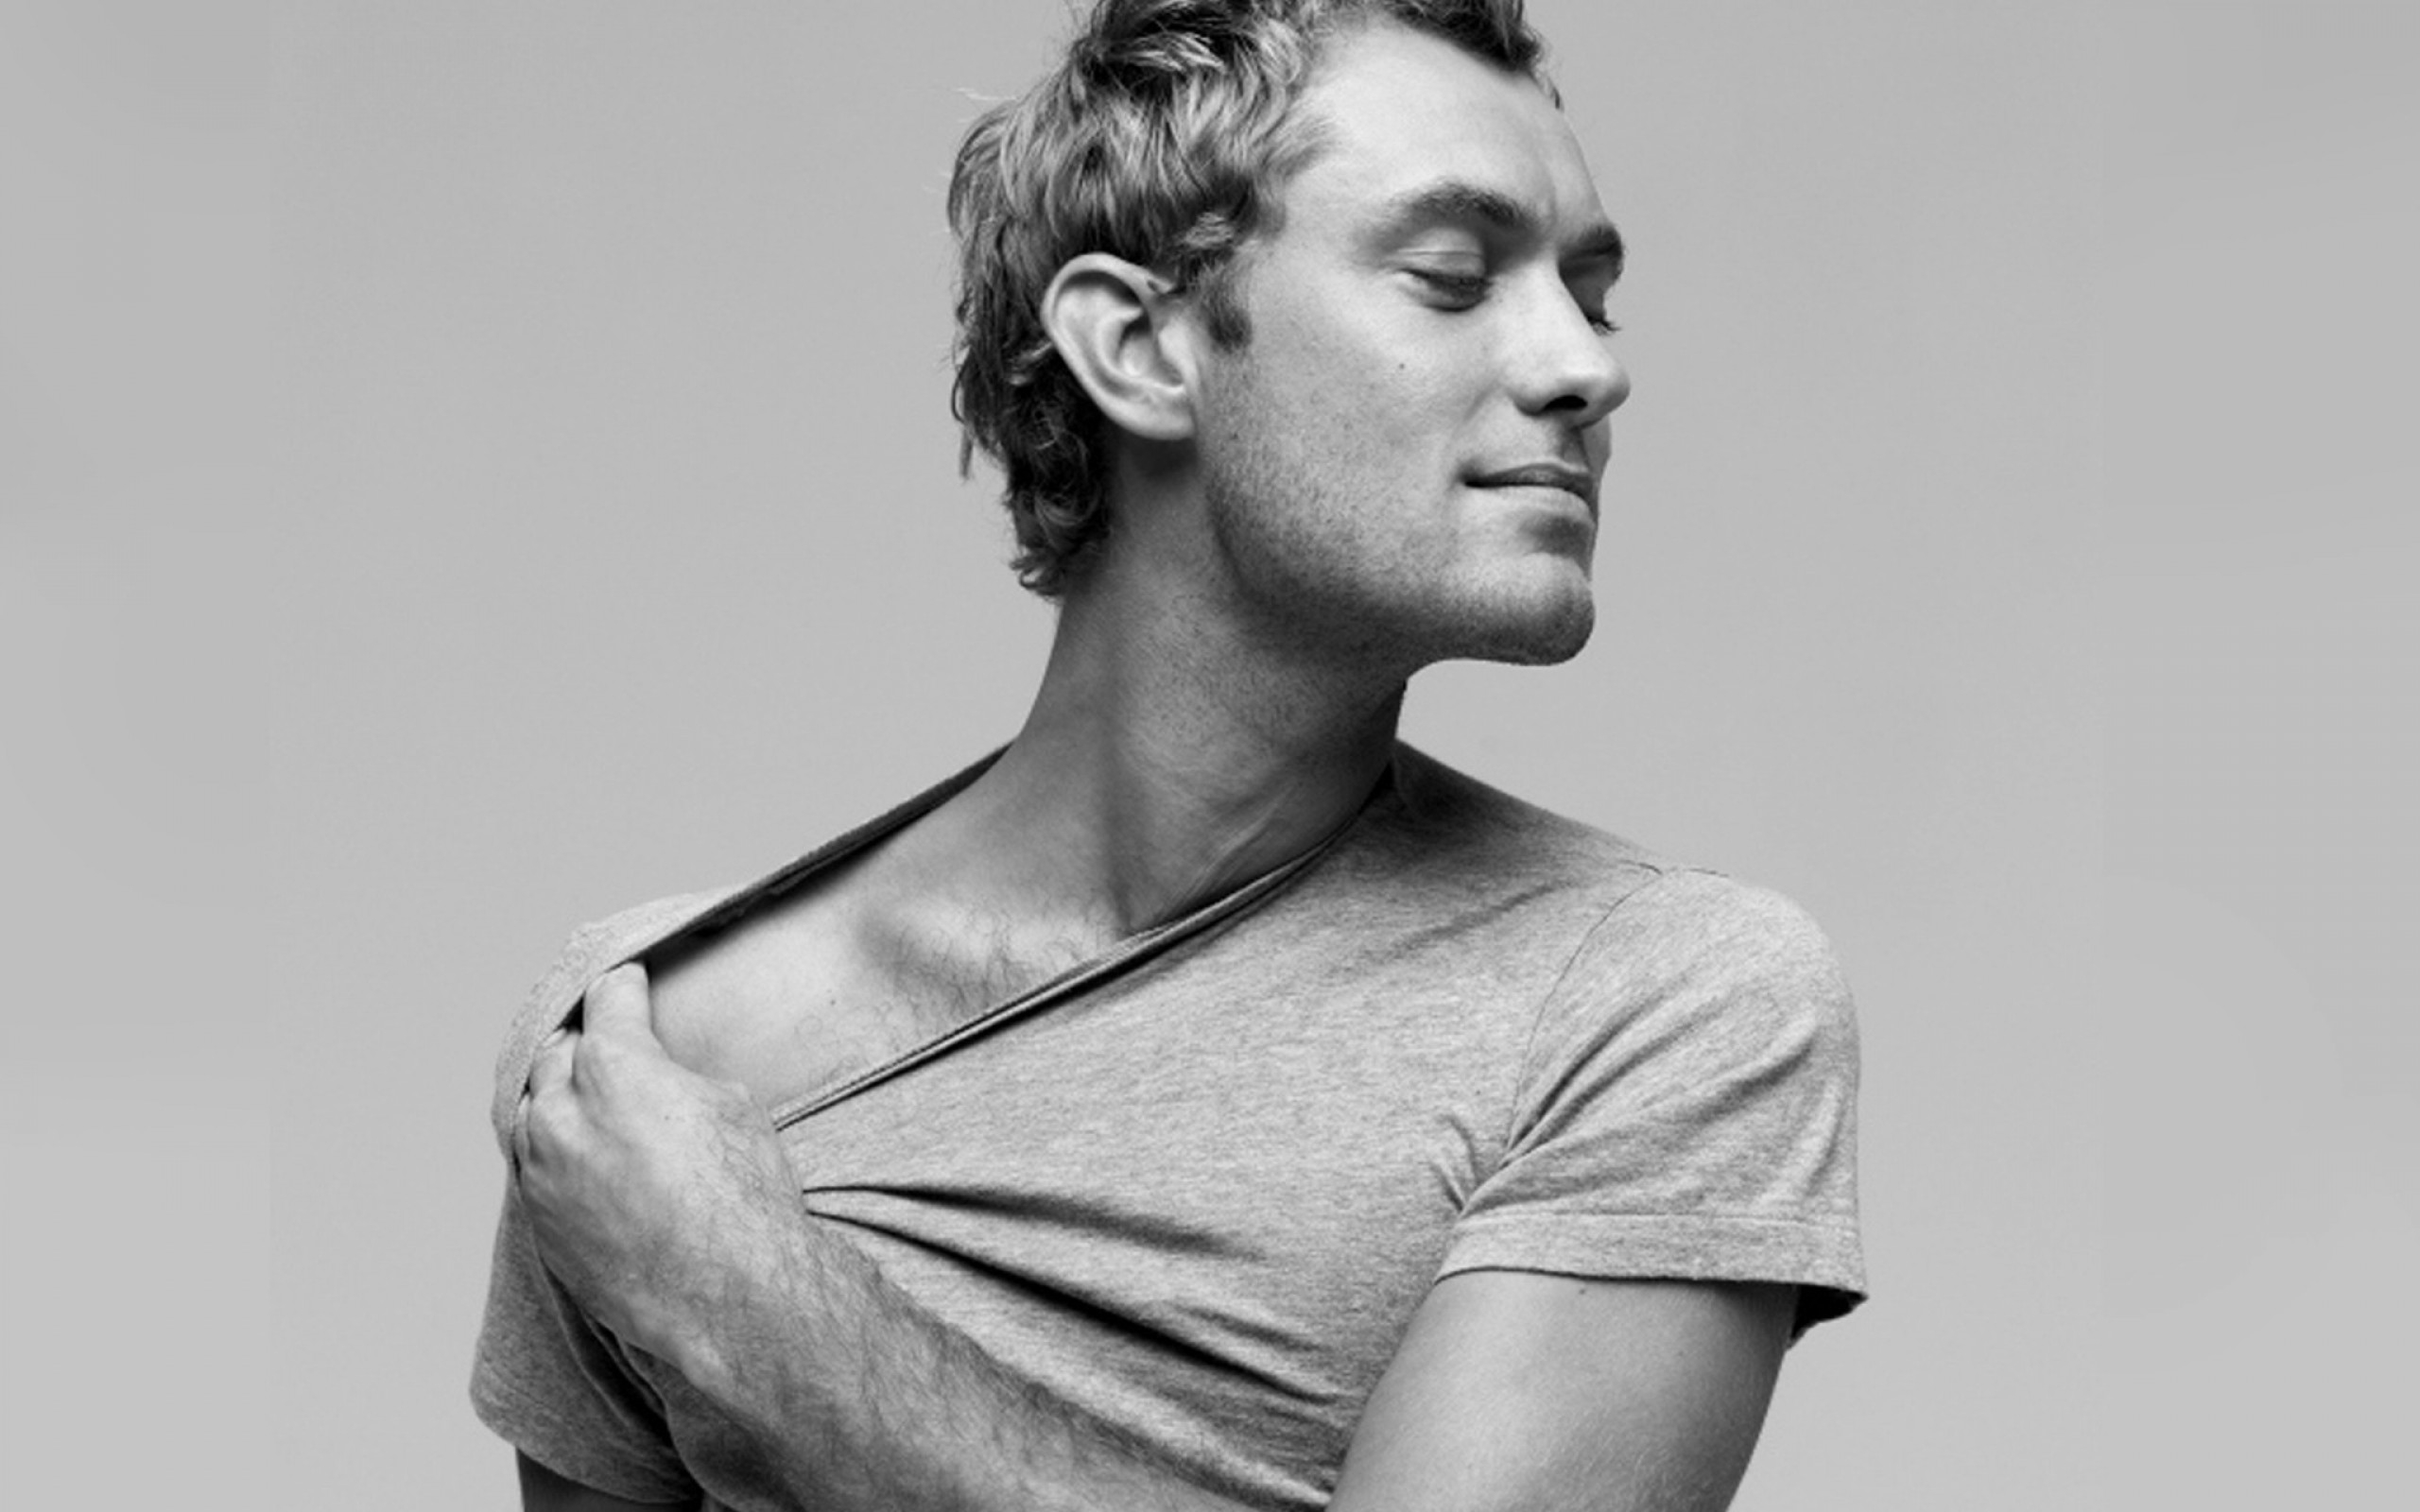 Jude Law T Shirt Image...